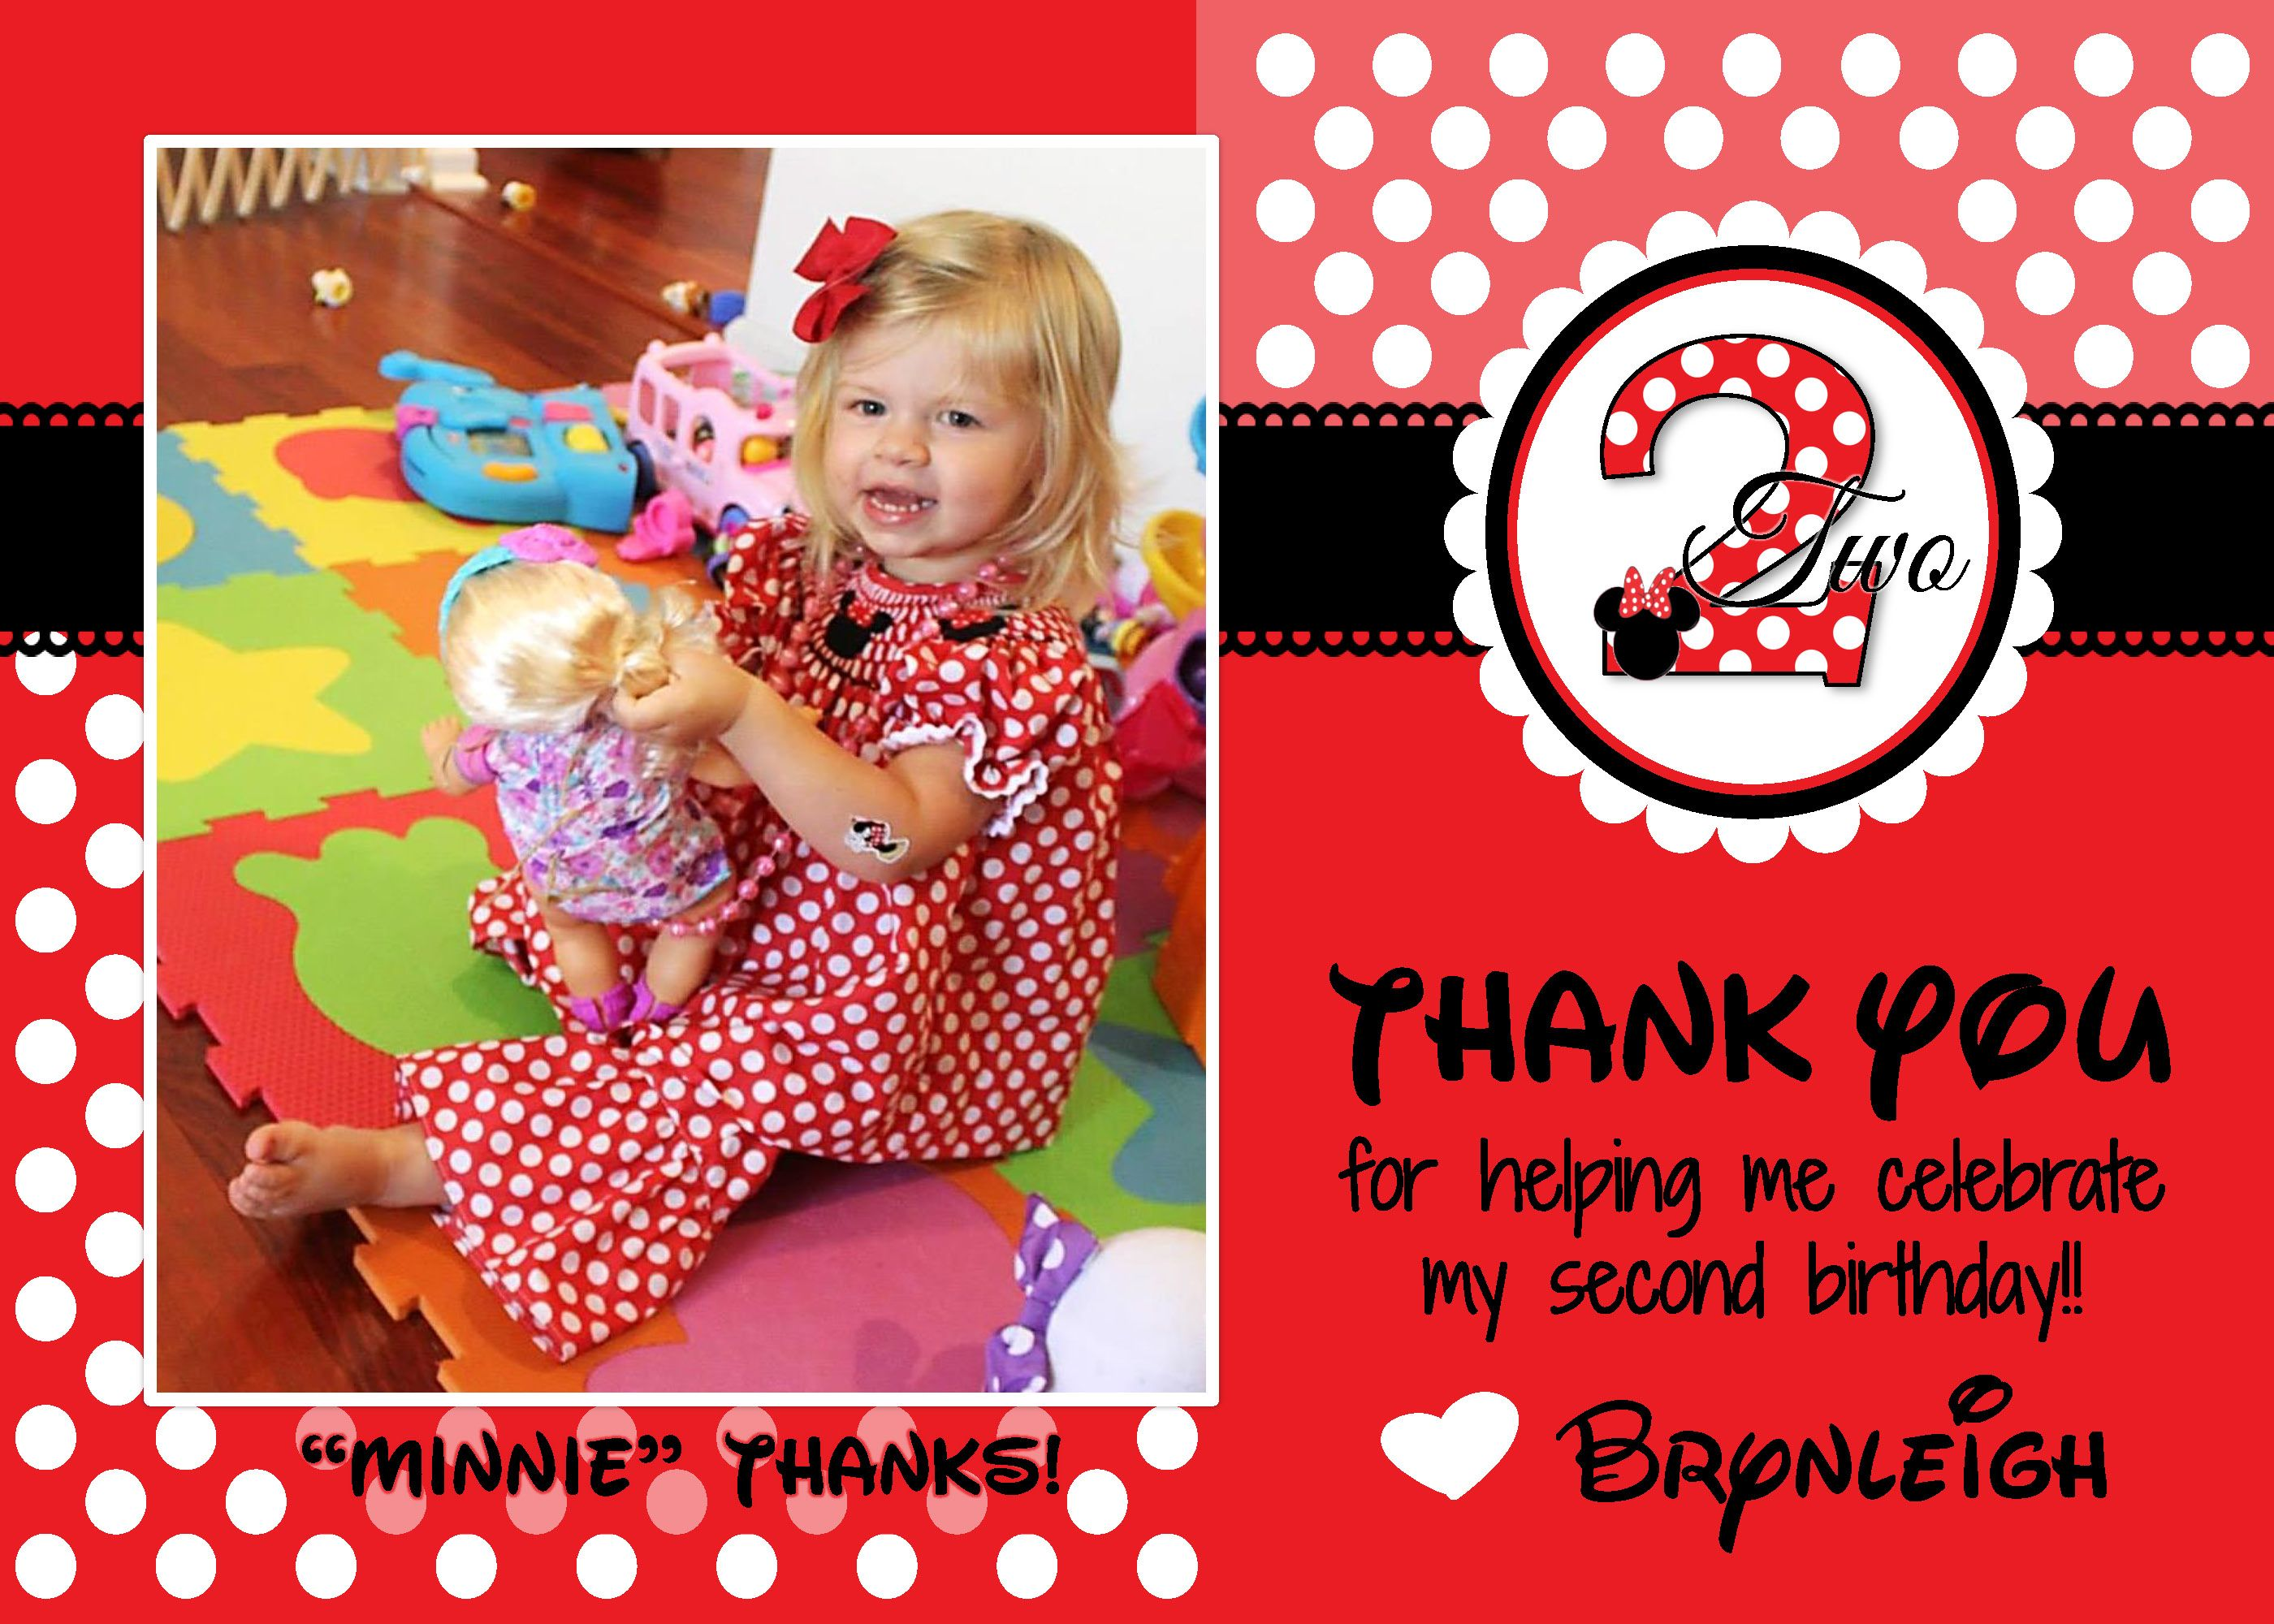 Minnie Mouse Birthday Party Thank You Card Brynleigh S Minnie